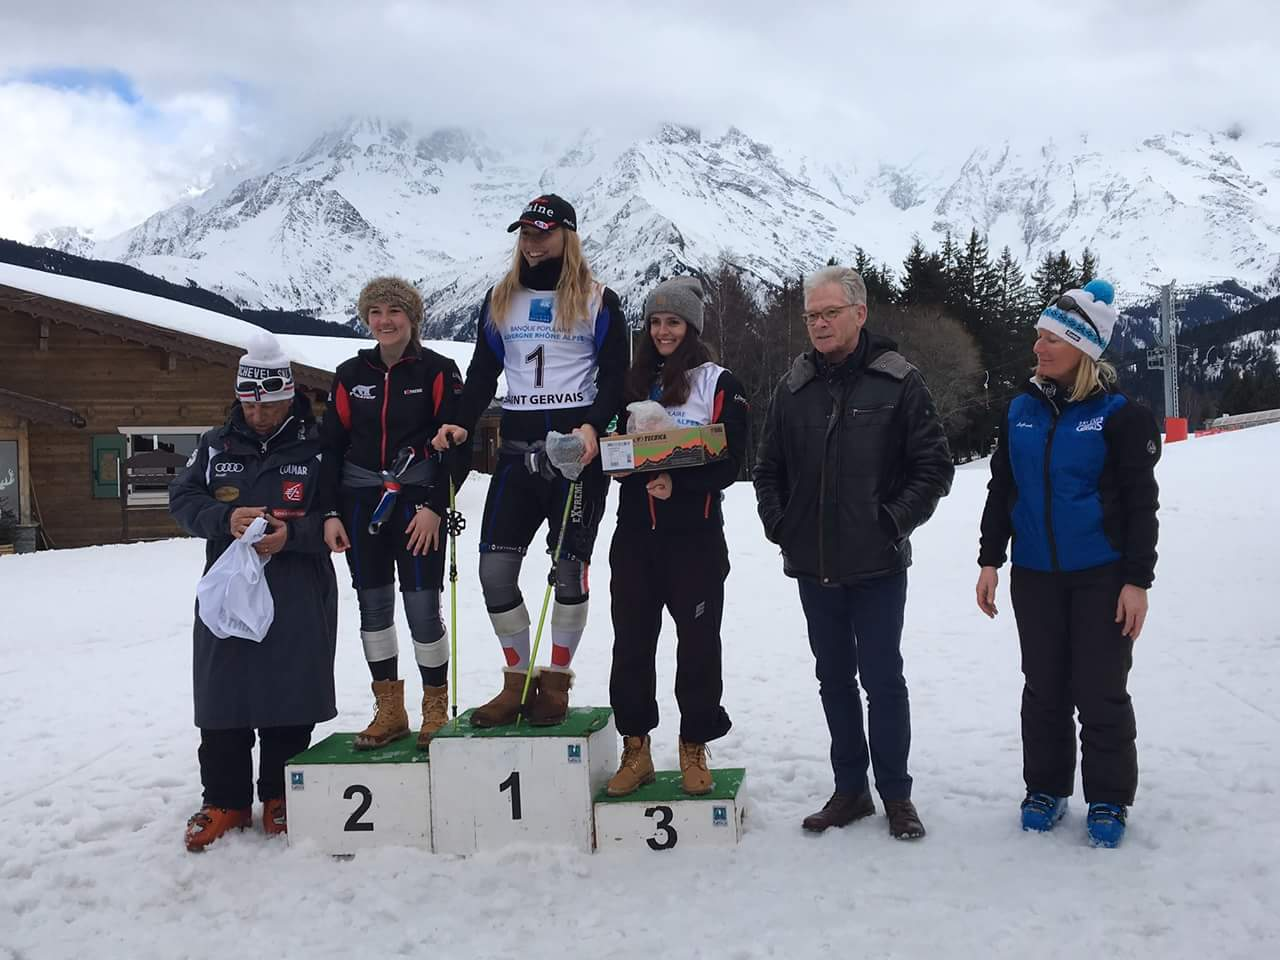 Third place in Slalom St Gervais 2018